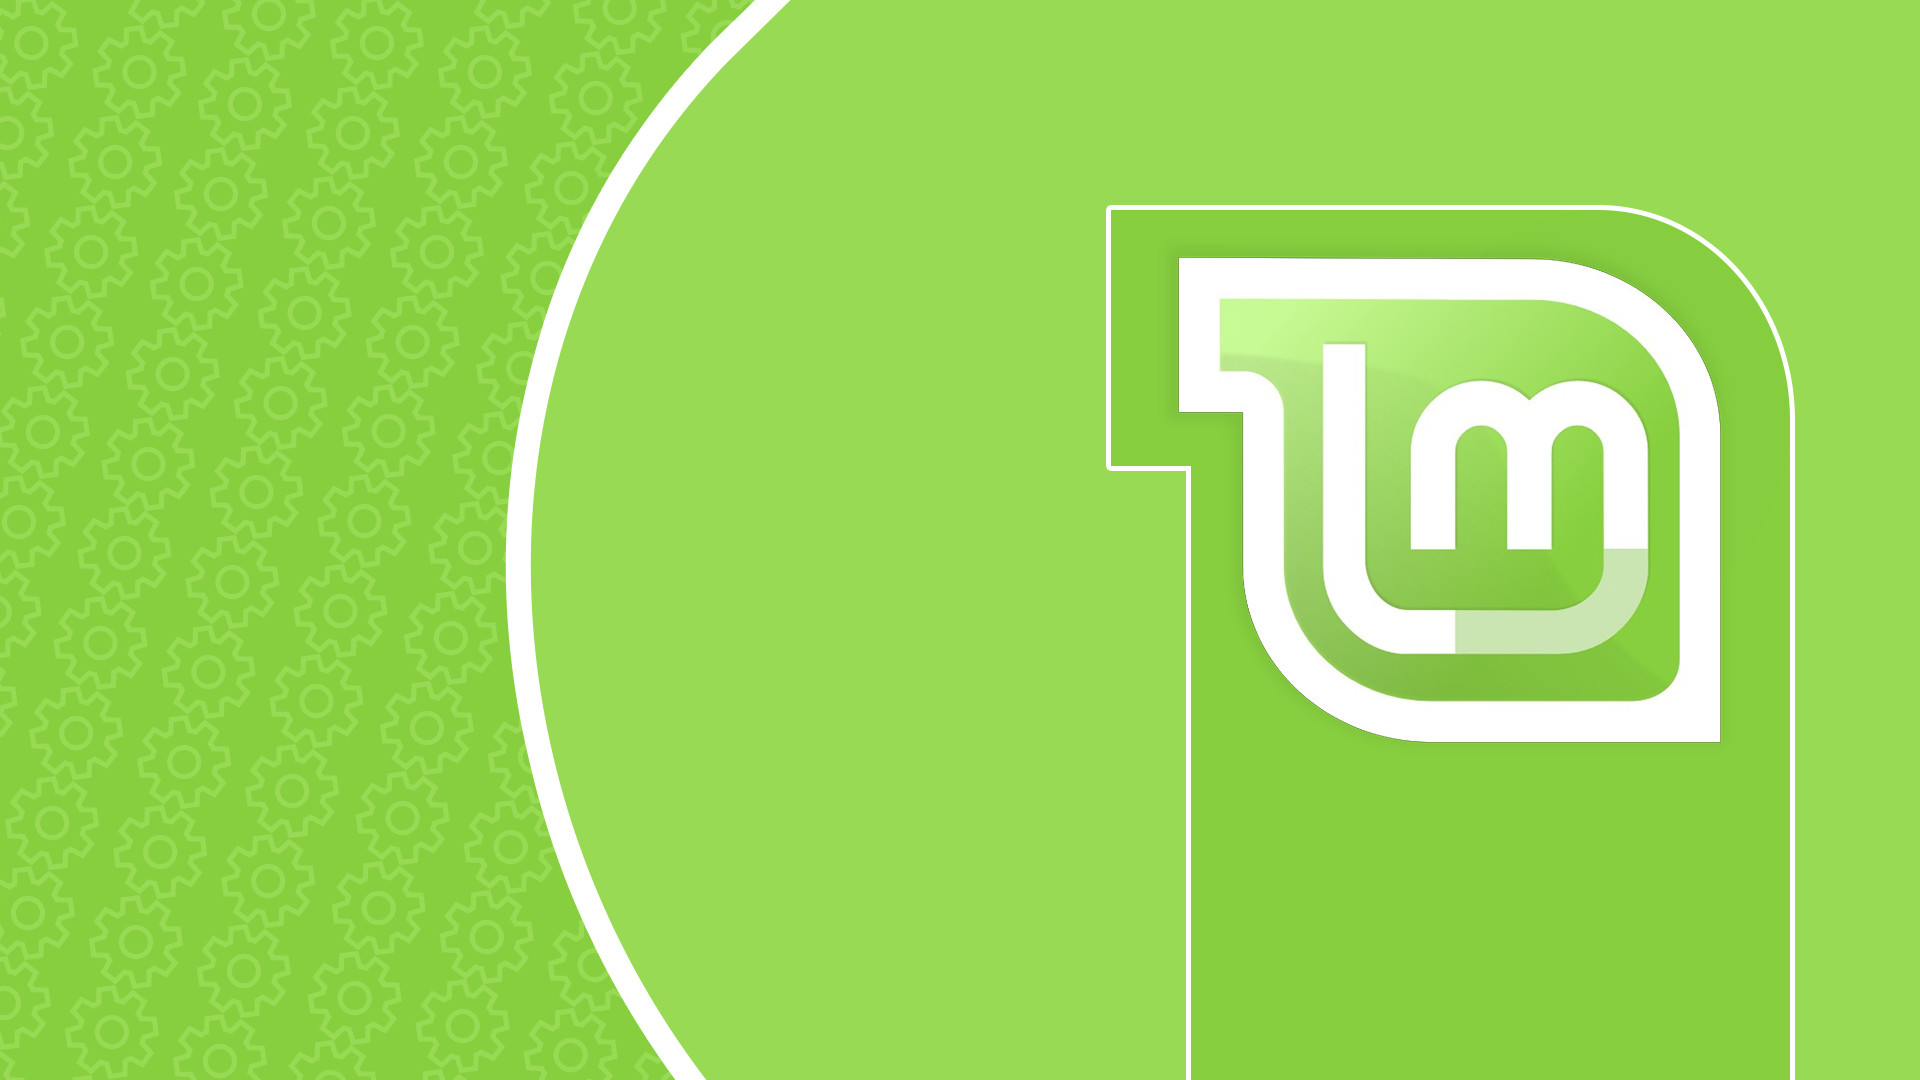 Linux Mint 19 1 betas released in anticipation for full